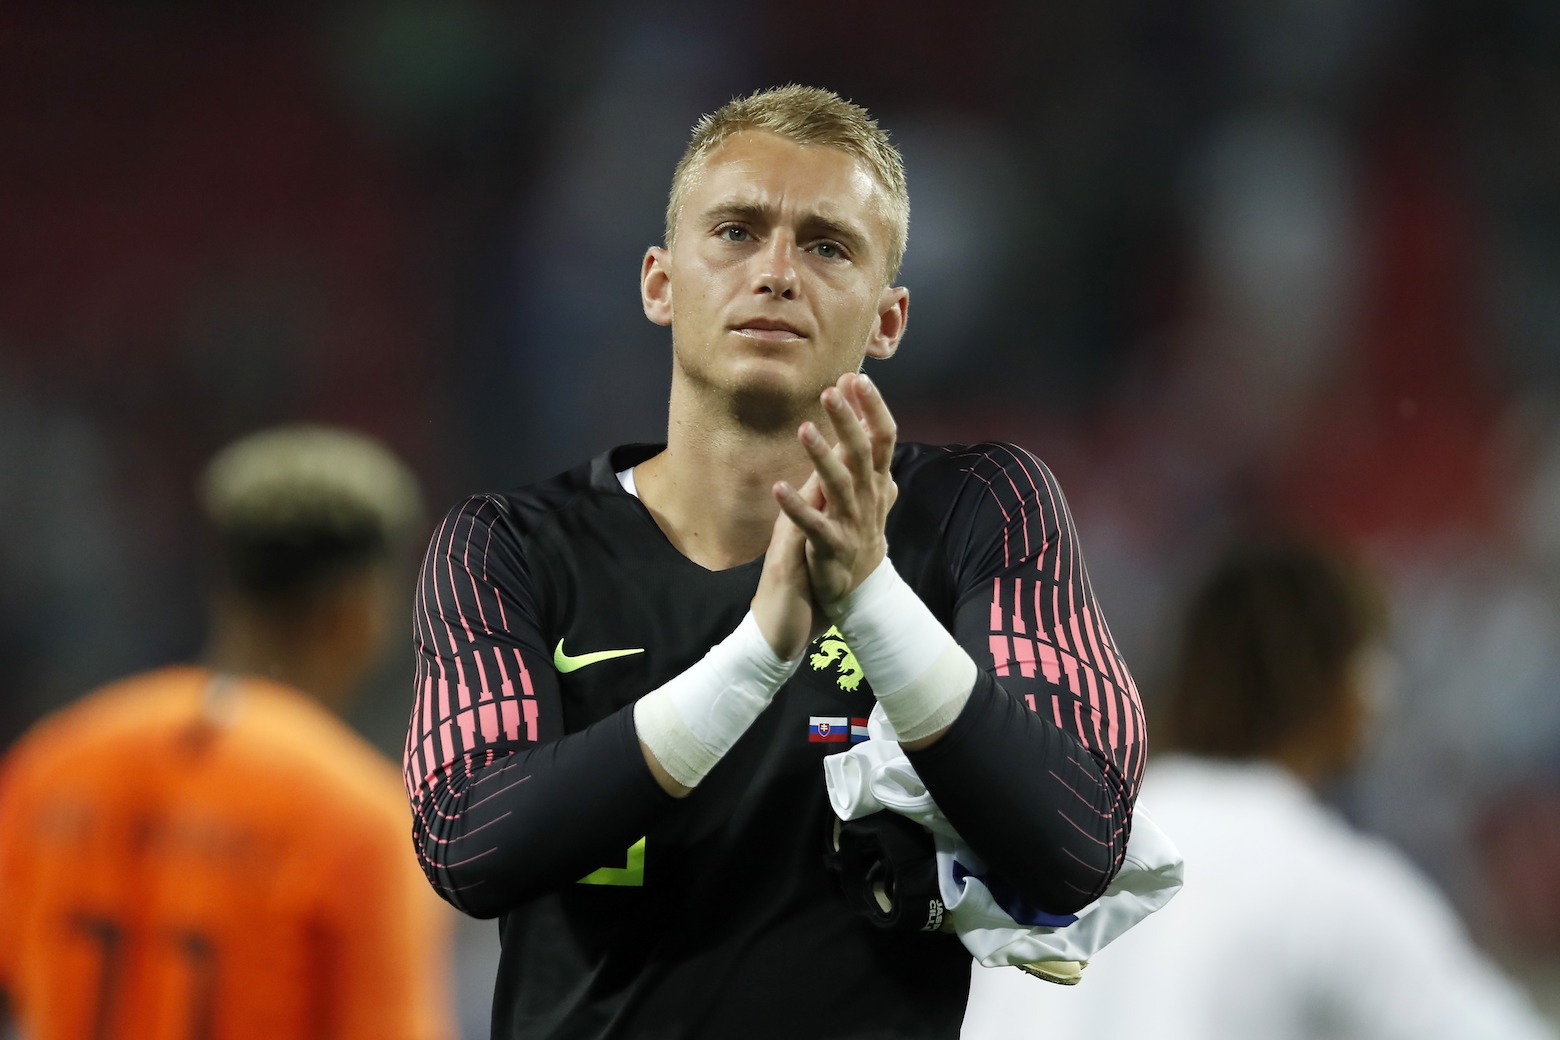 Cillessen could be answer to Klopp's long-running No.1 problem